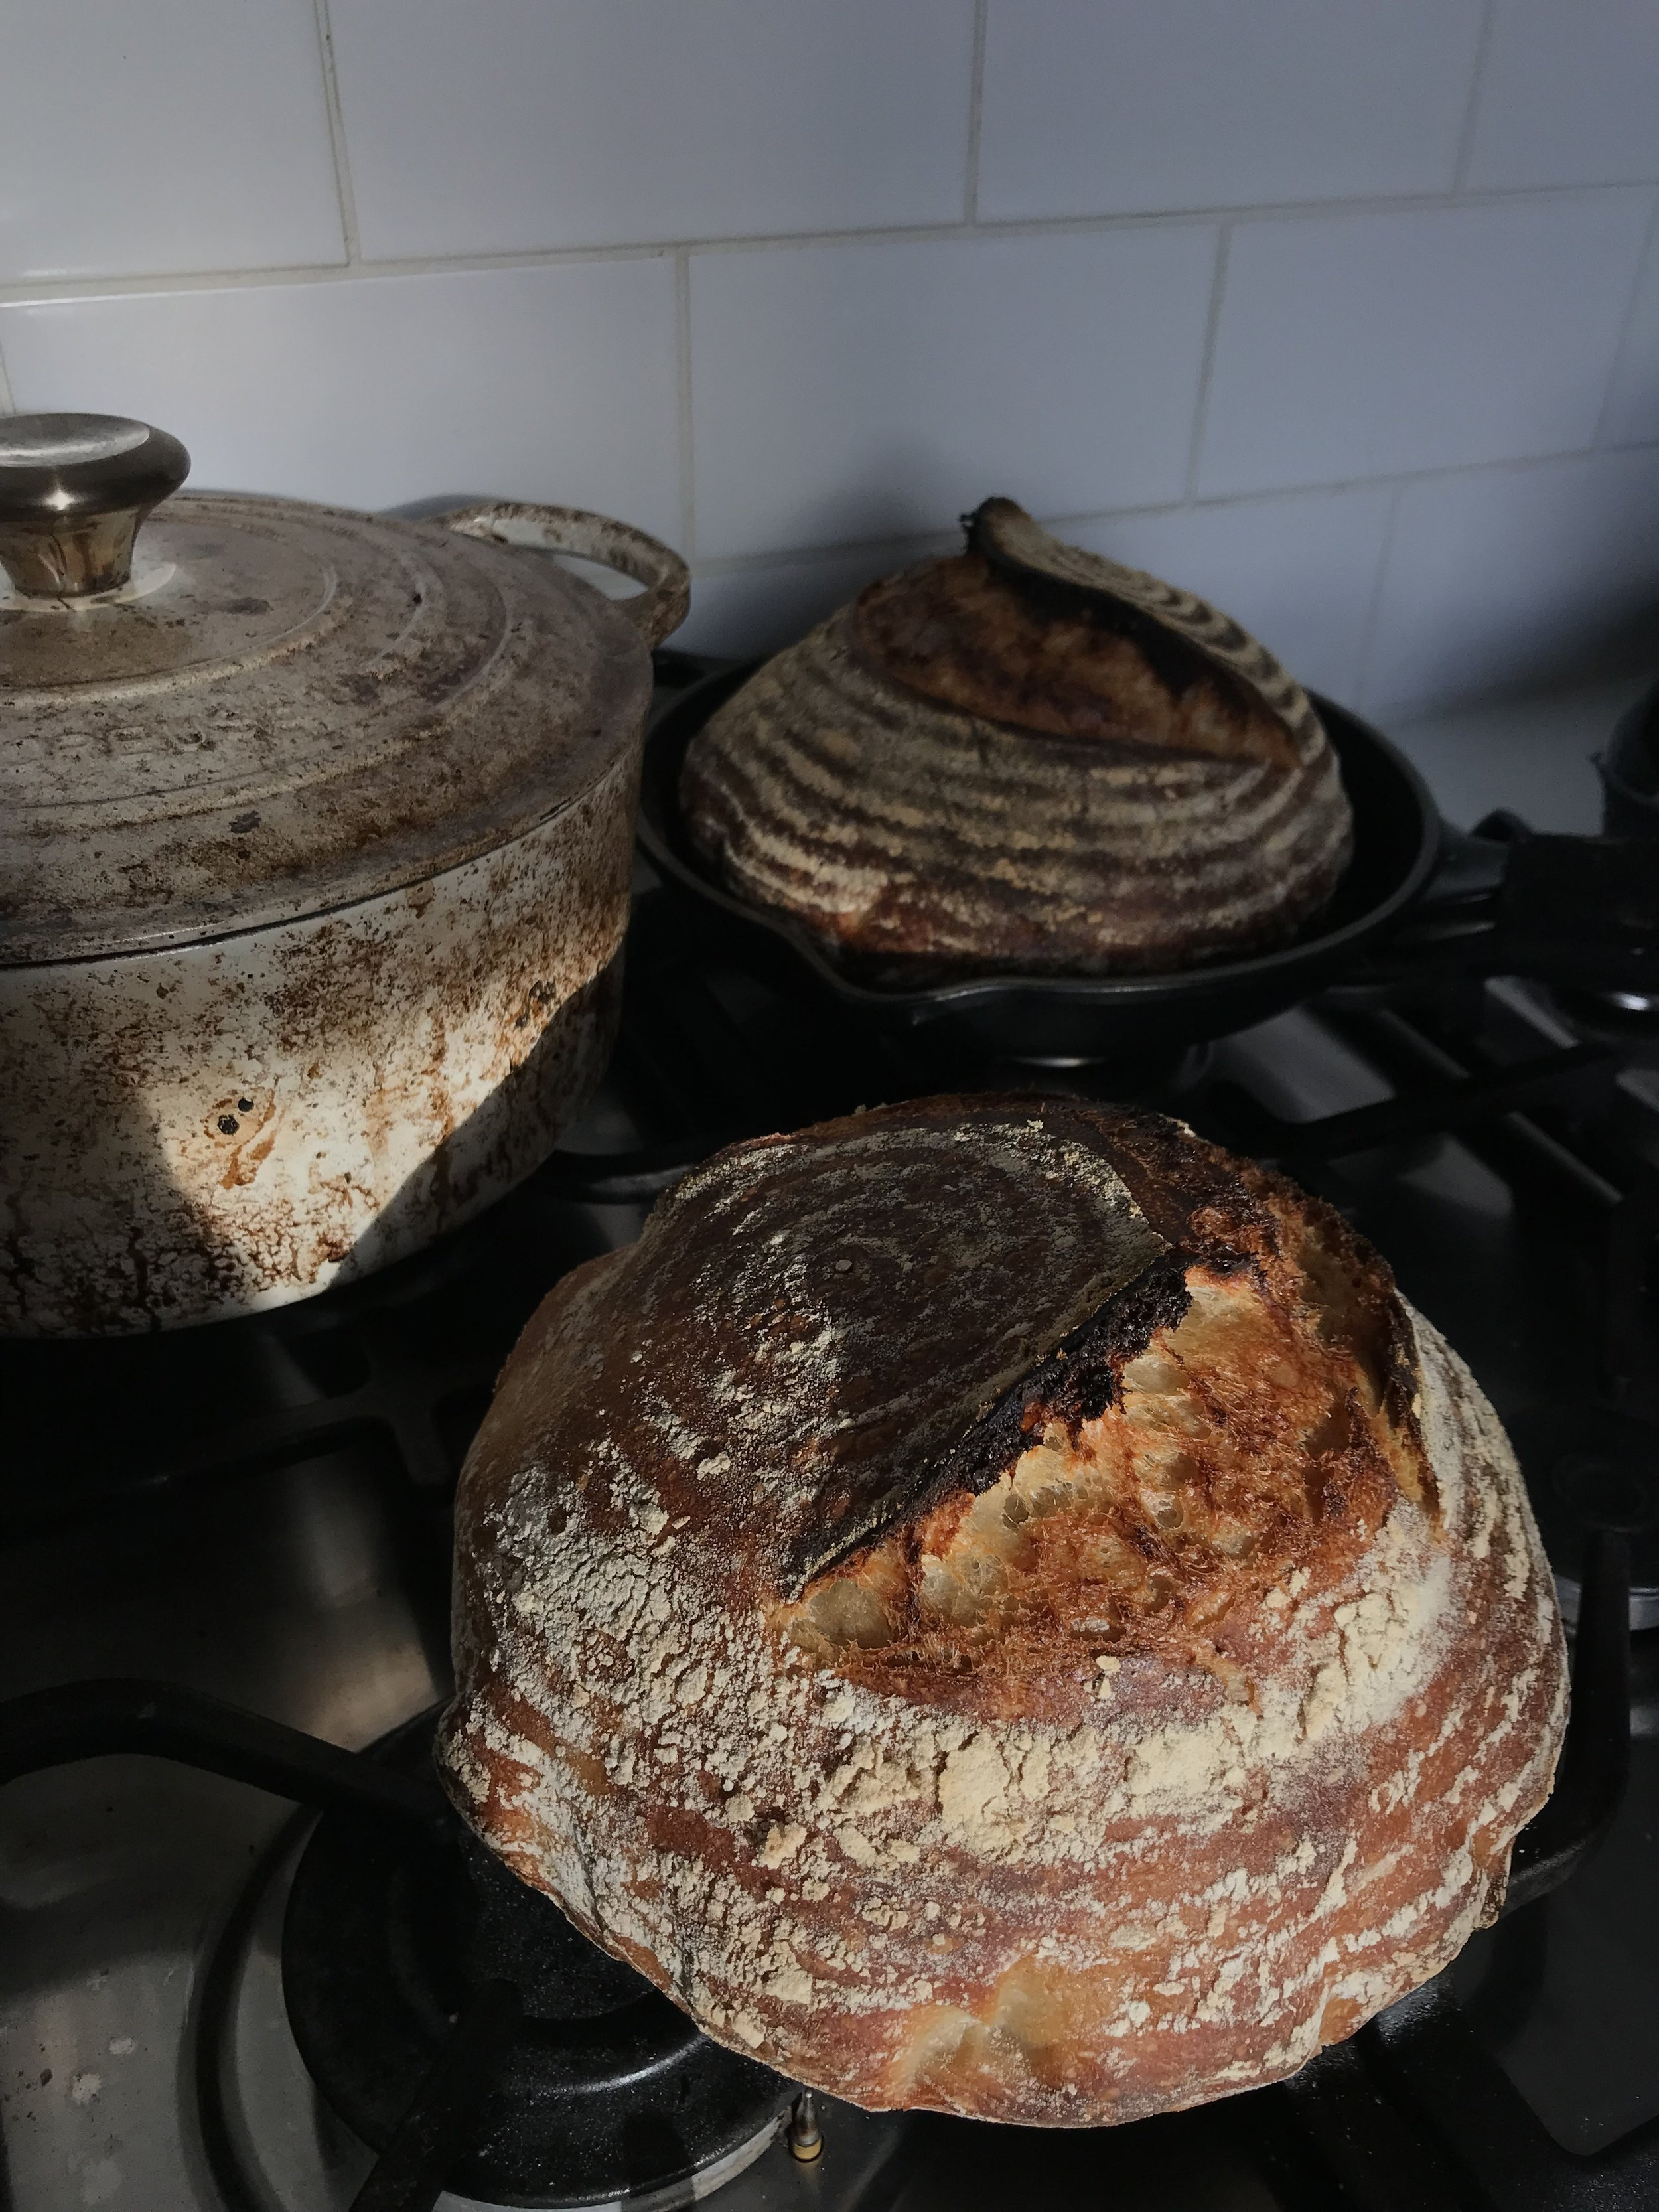 Lou Dungate - Homemade Sourdough